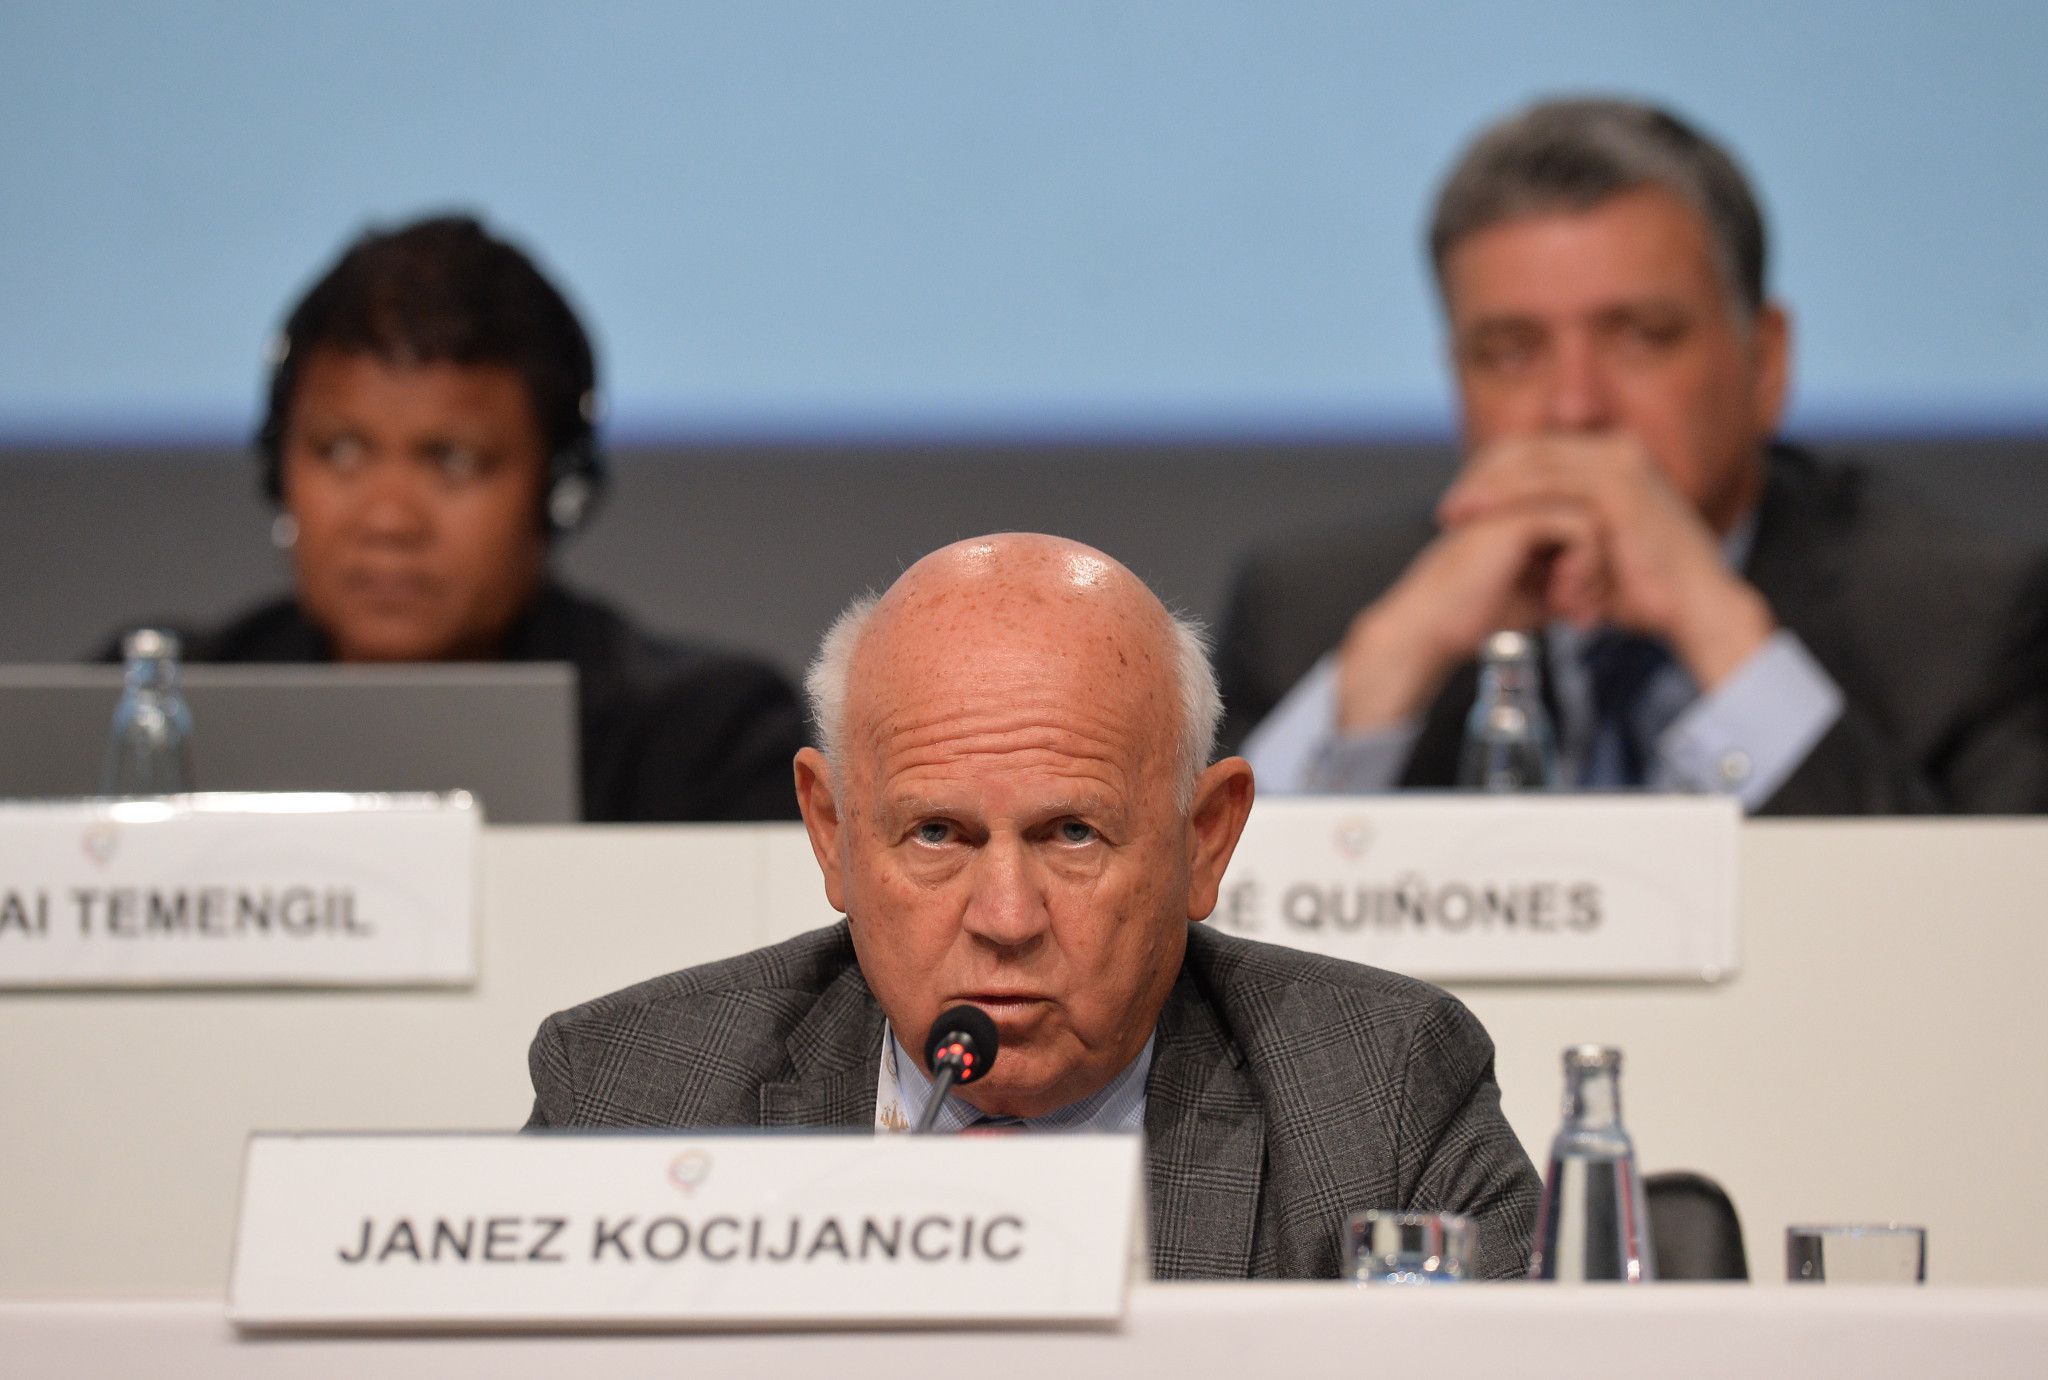 Exclusive: Kocijančič believes human rights concerns will not overshadow Minsk 2019